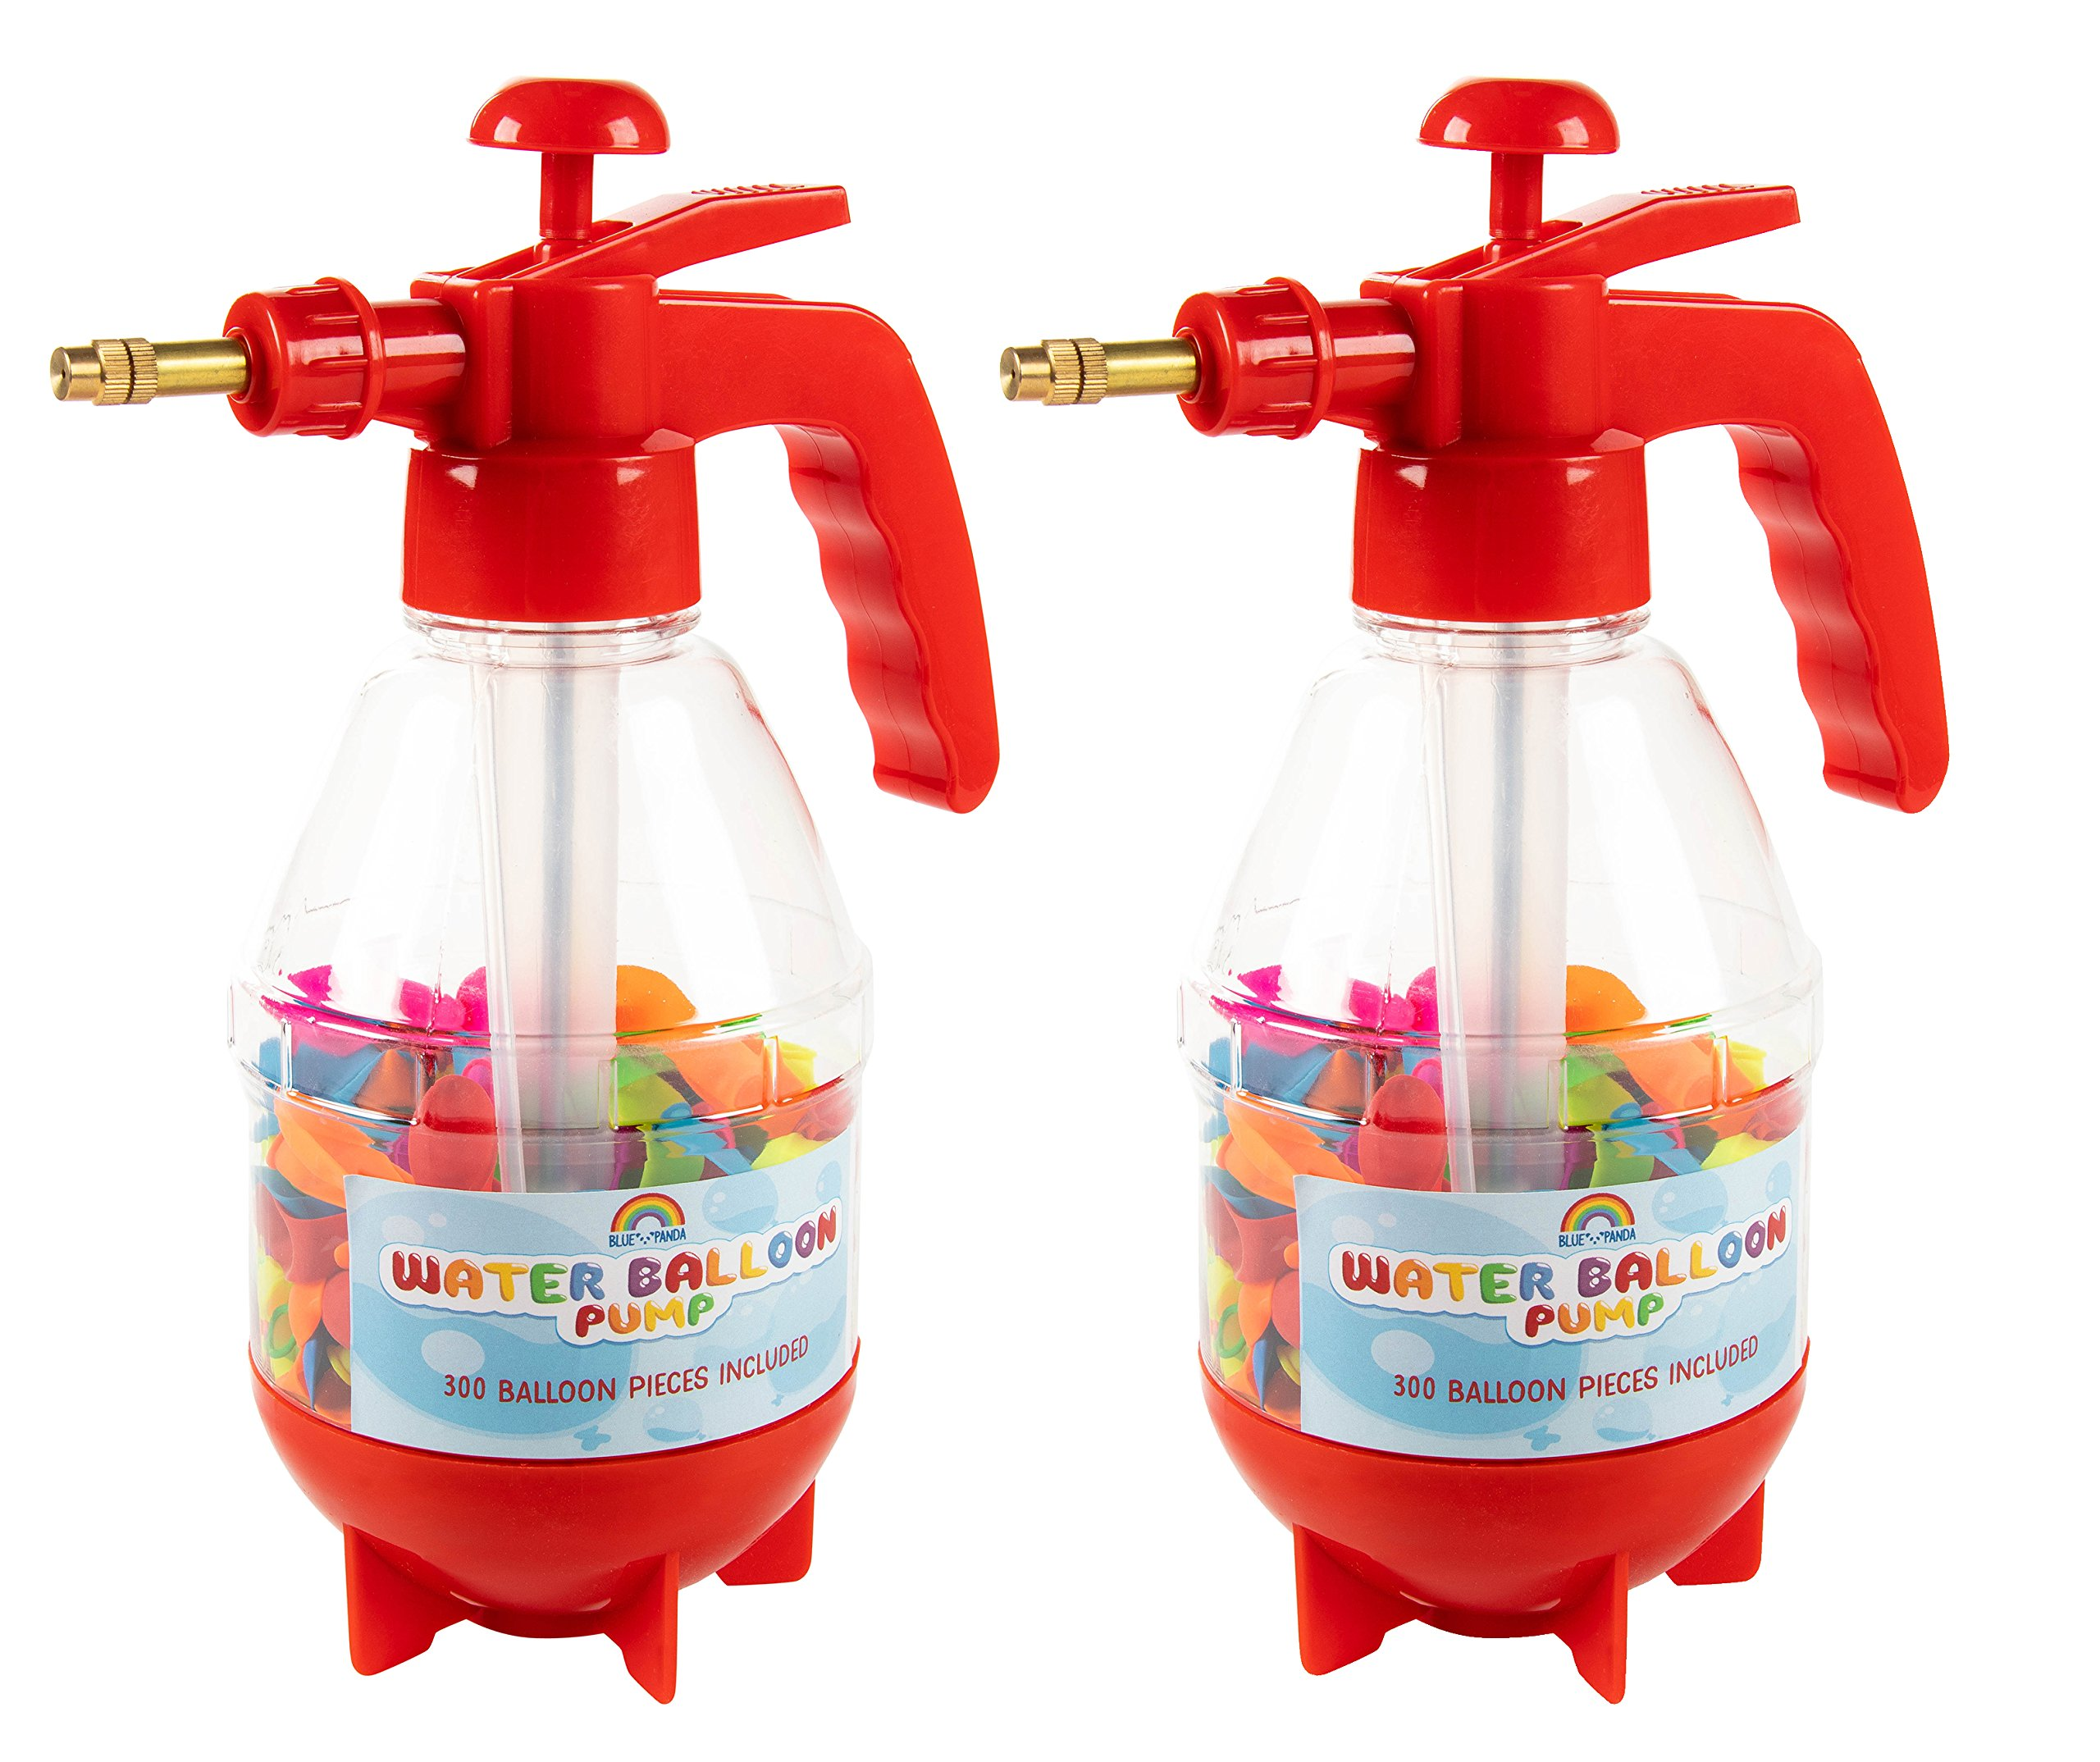 Blue Panda Water Balloon Pump - 2-Pack Water Balloon Filling Stations for Summer Pool Parties, Water Balloon Fights, Kids Birthdays, 300 Multi-Colored Balloons Included, Red, 7.5 x 11 x 4 Inches